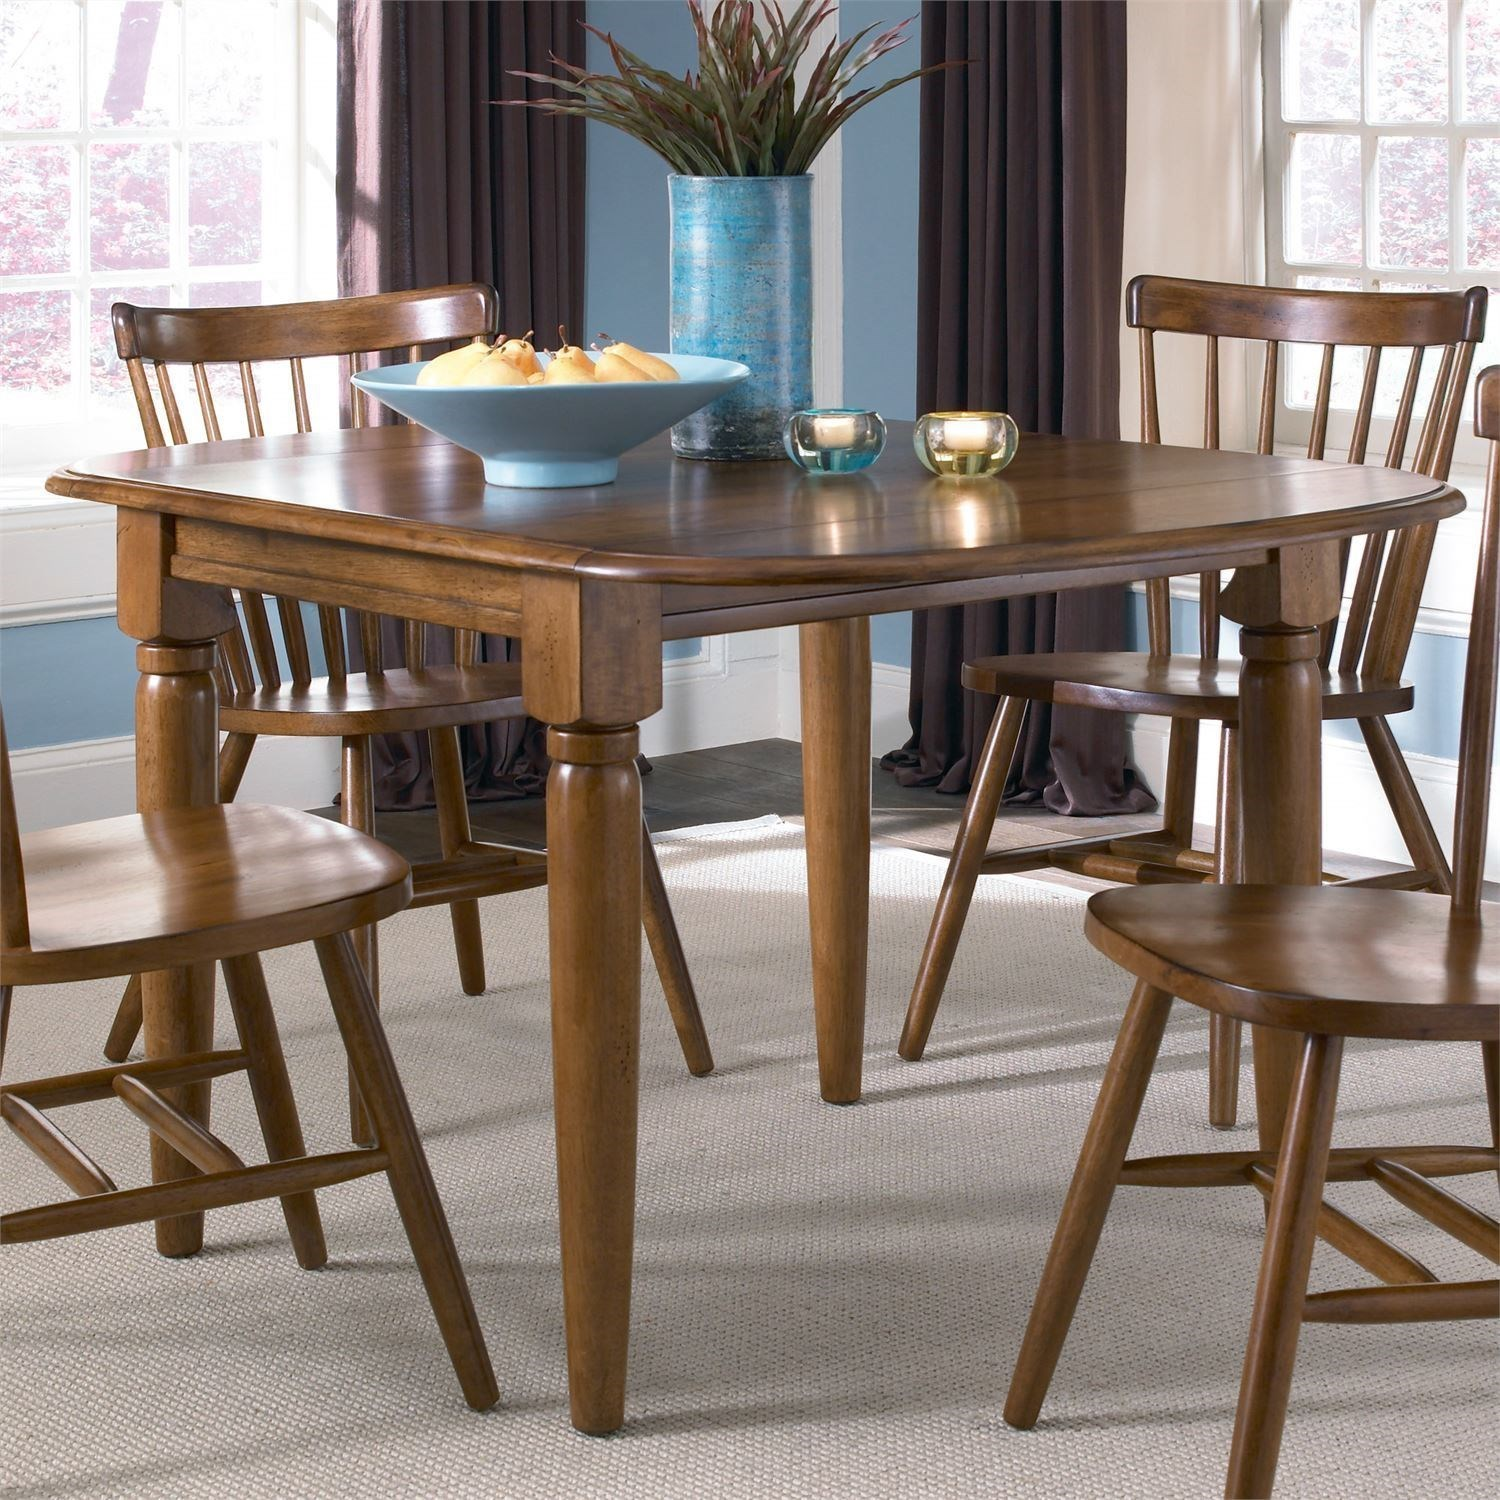 Creations II Dinette Table by Libby at Walker's Furniture